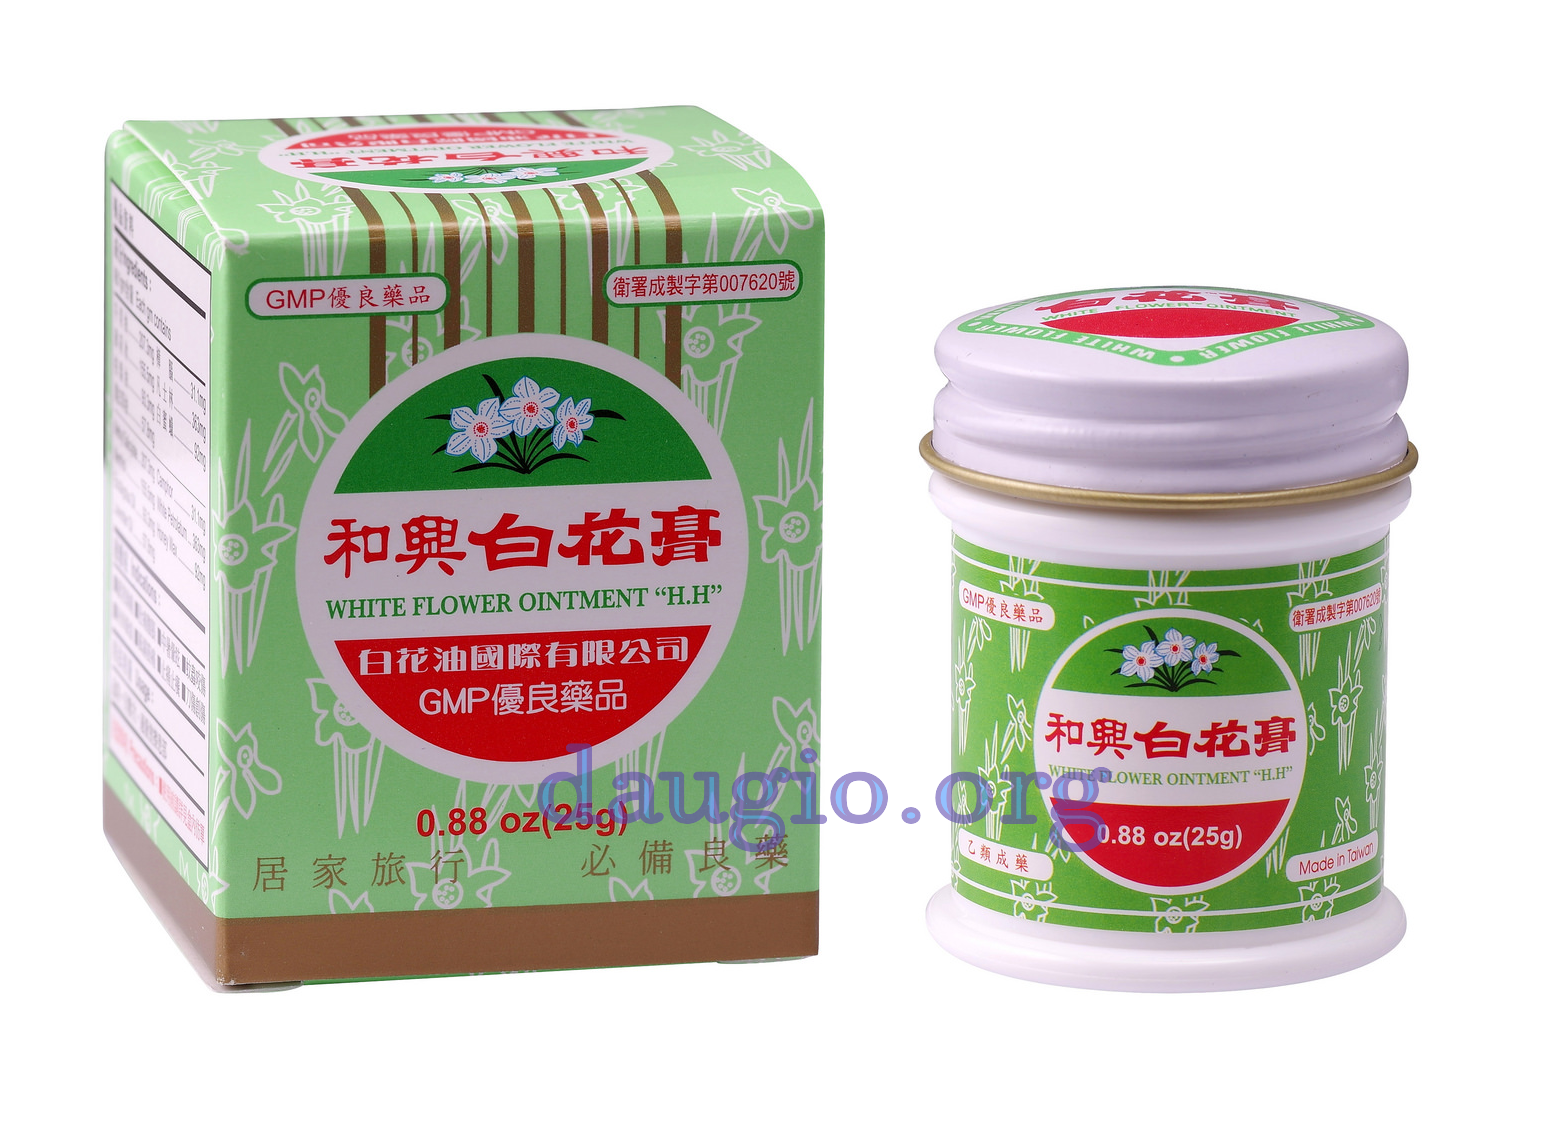 Snap Modern White Flower Ointment Philippines Ornament Images For